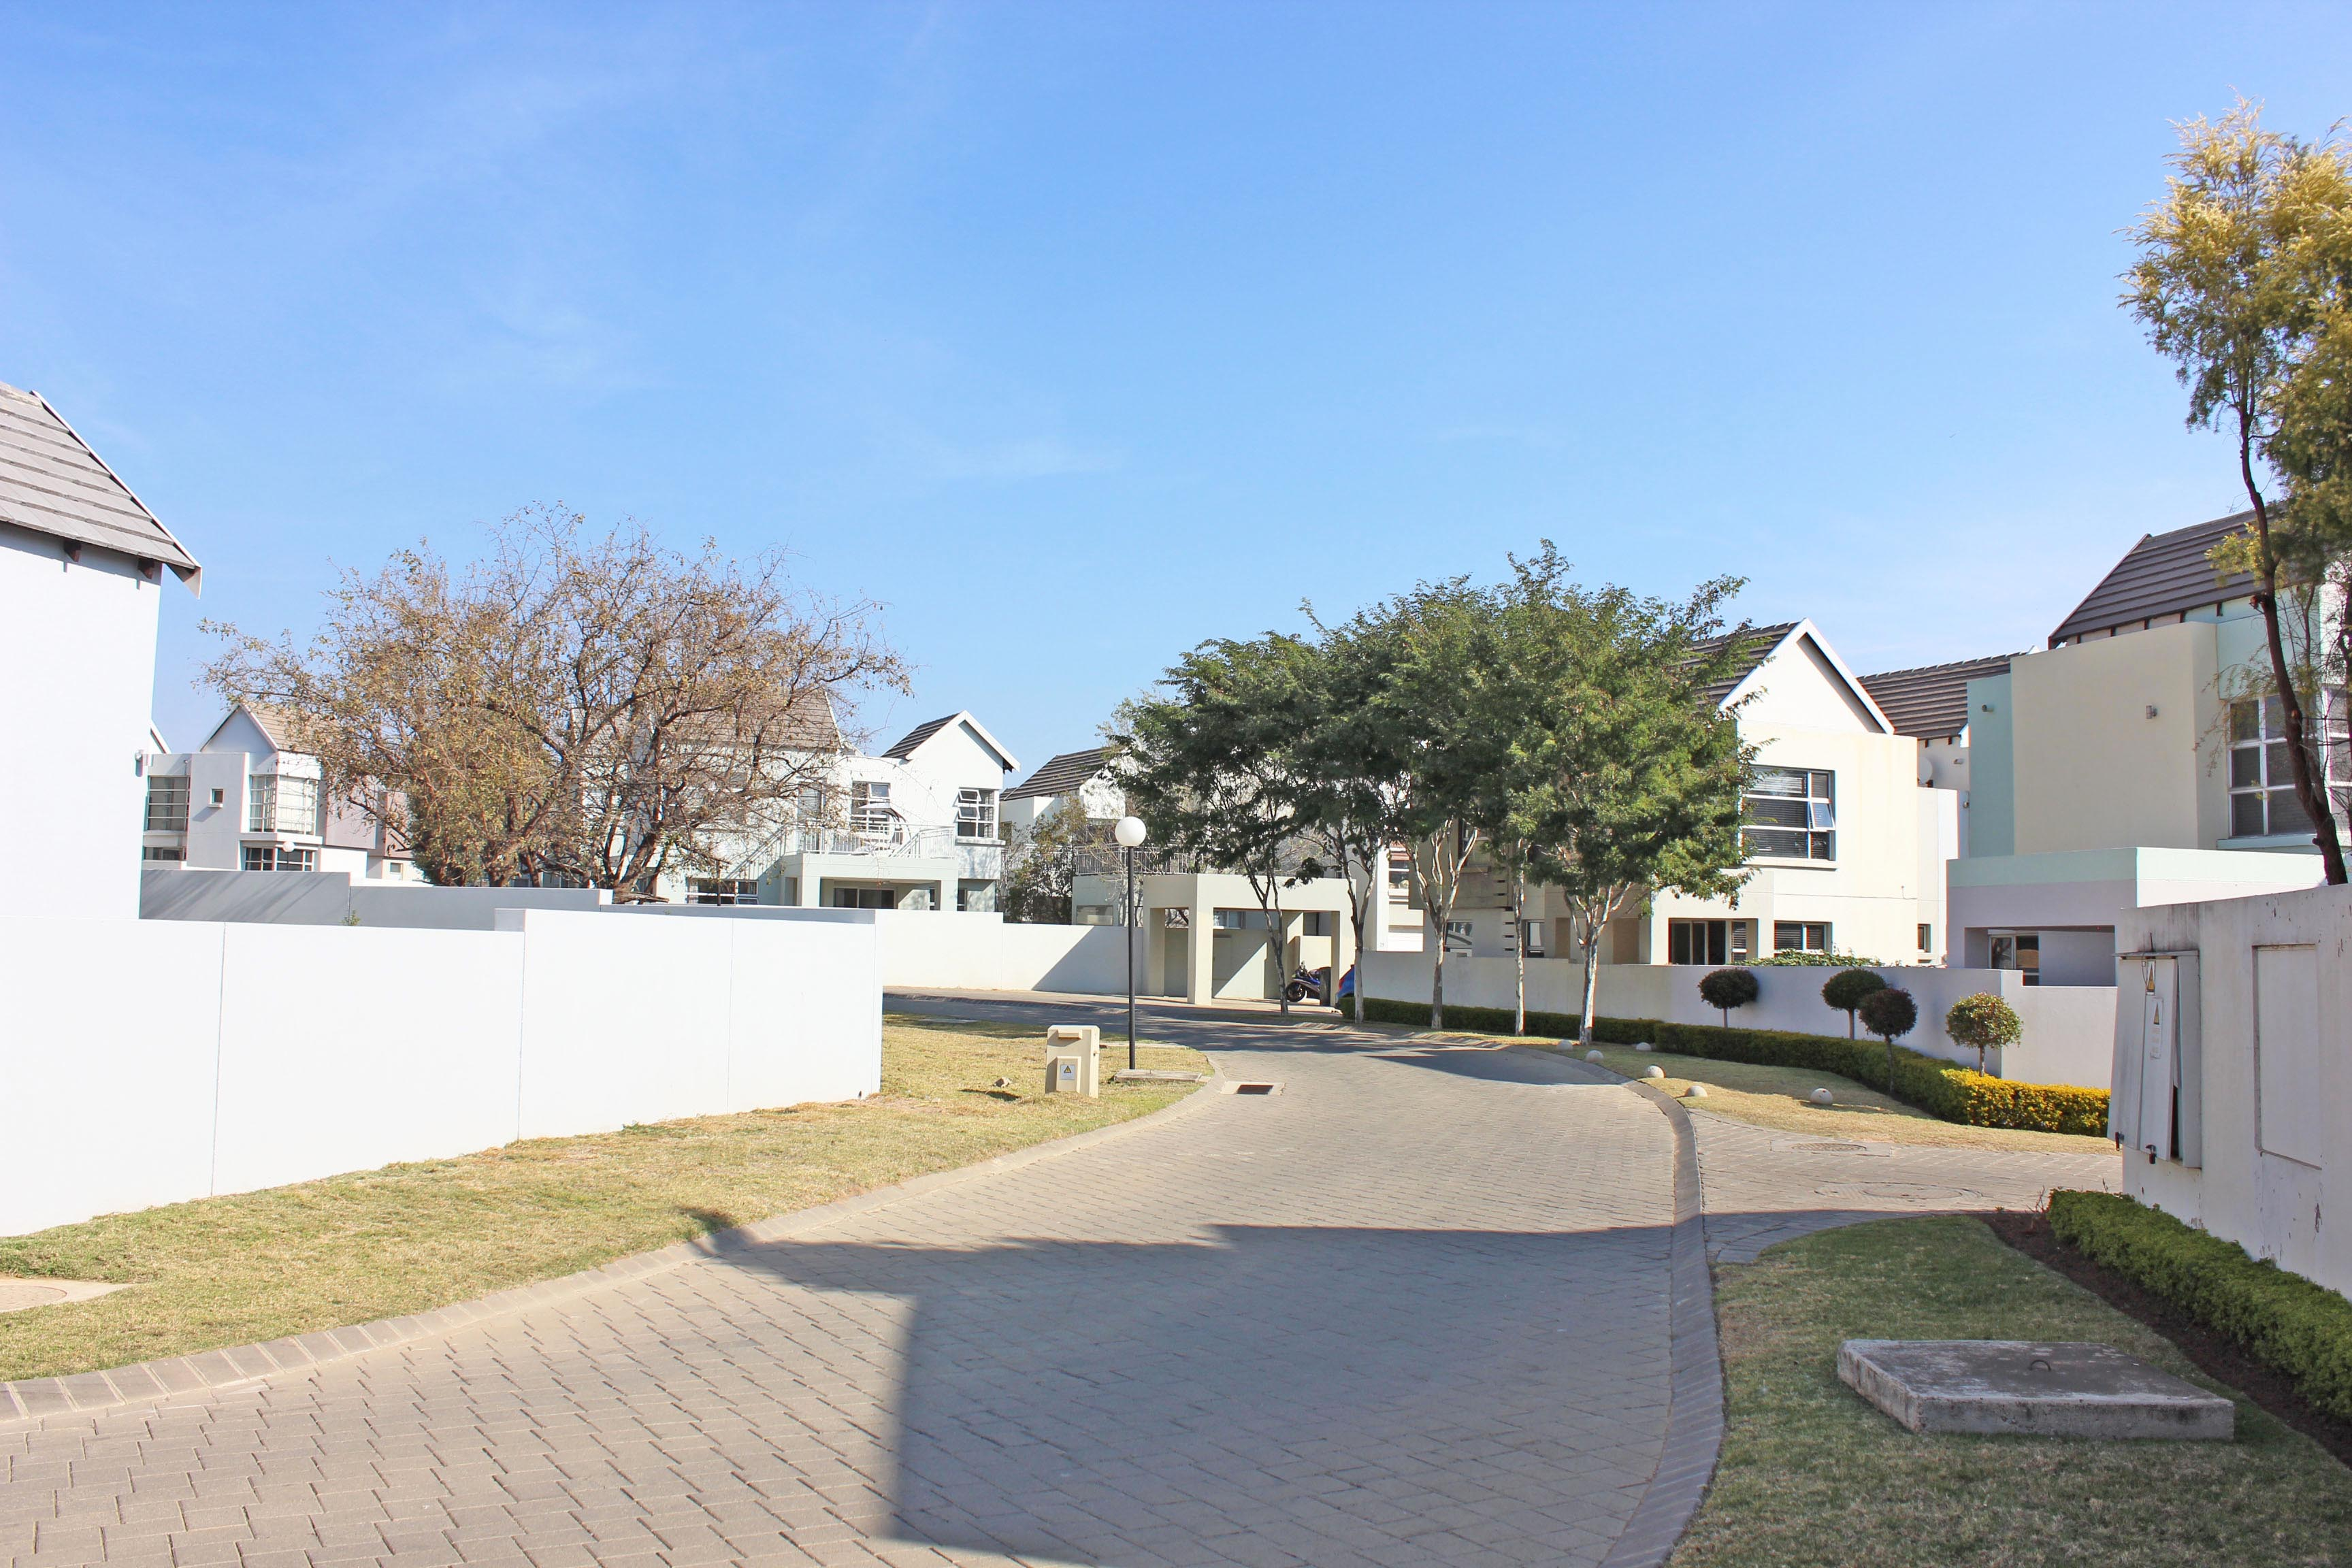 3 Bedroom Townhouse for sale in North Riding ENT0075308 : photo#16